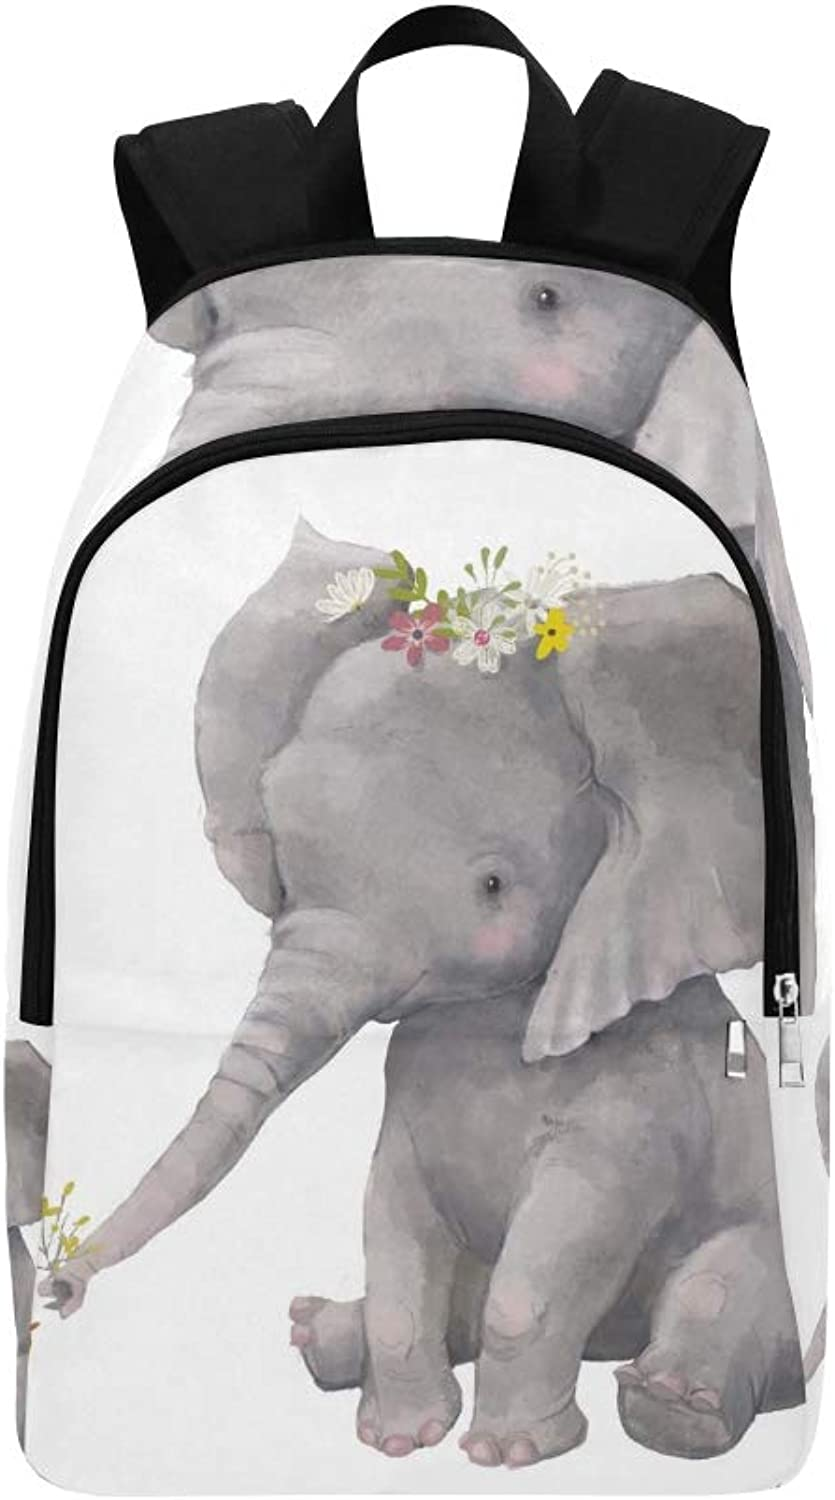 Cute Elephant Floral Wreath Little Duck Casual Daypack Travel Bag College School Backpack for Mens and Women